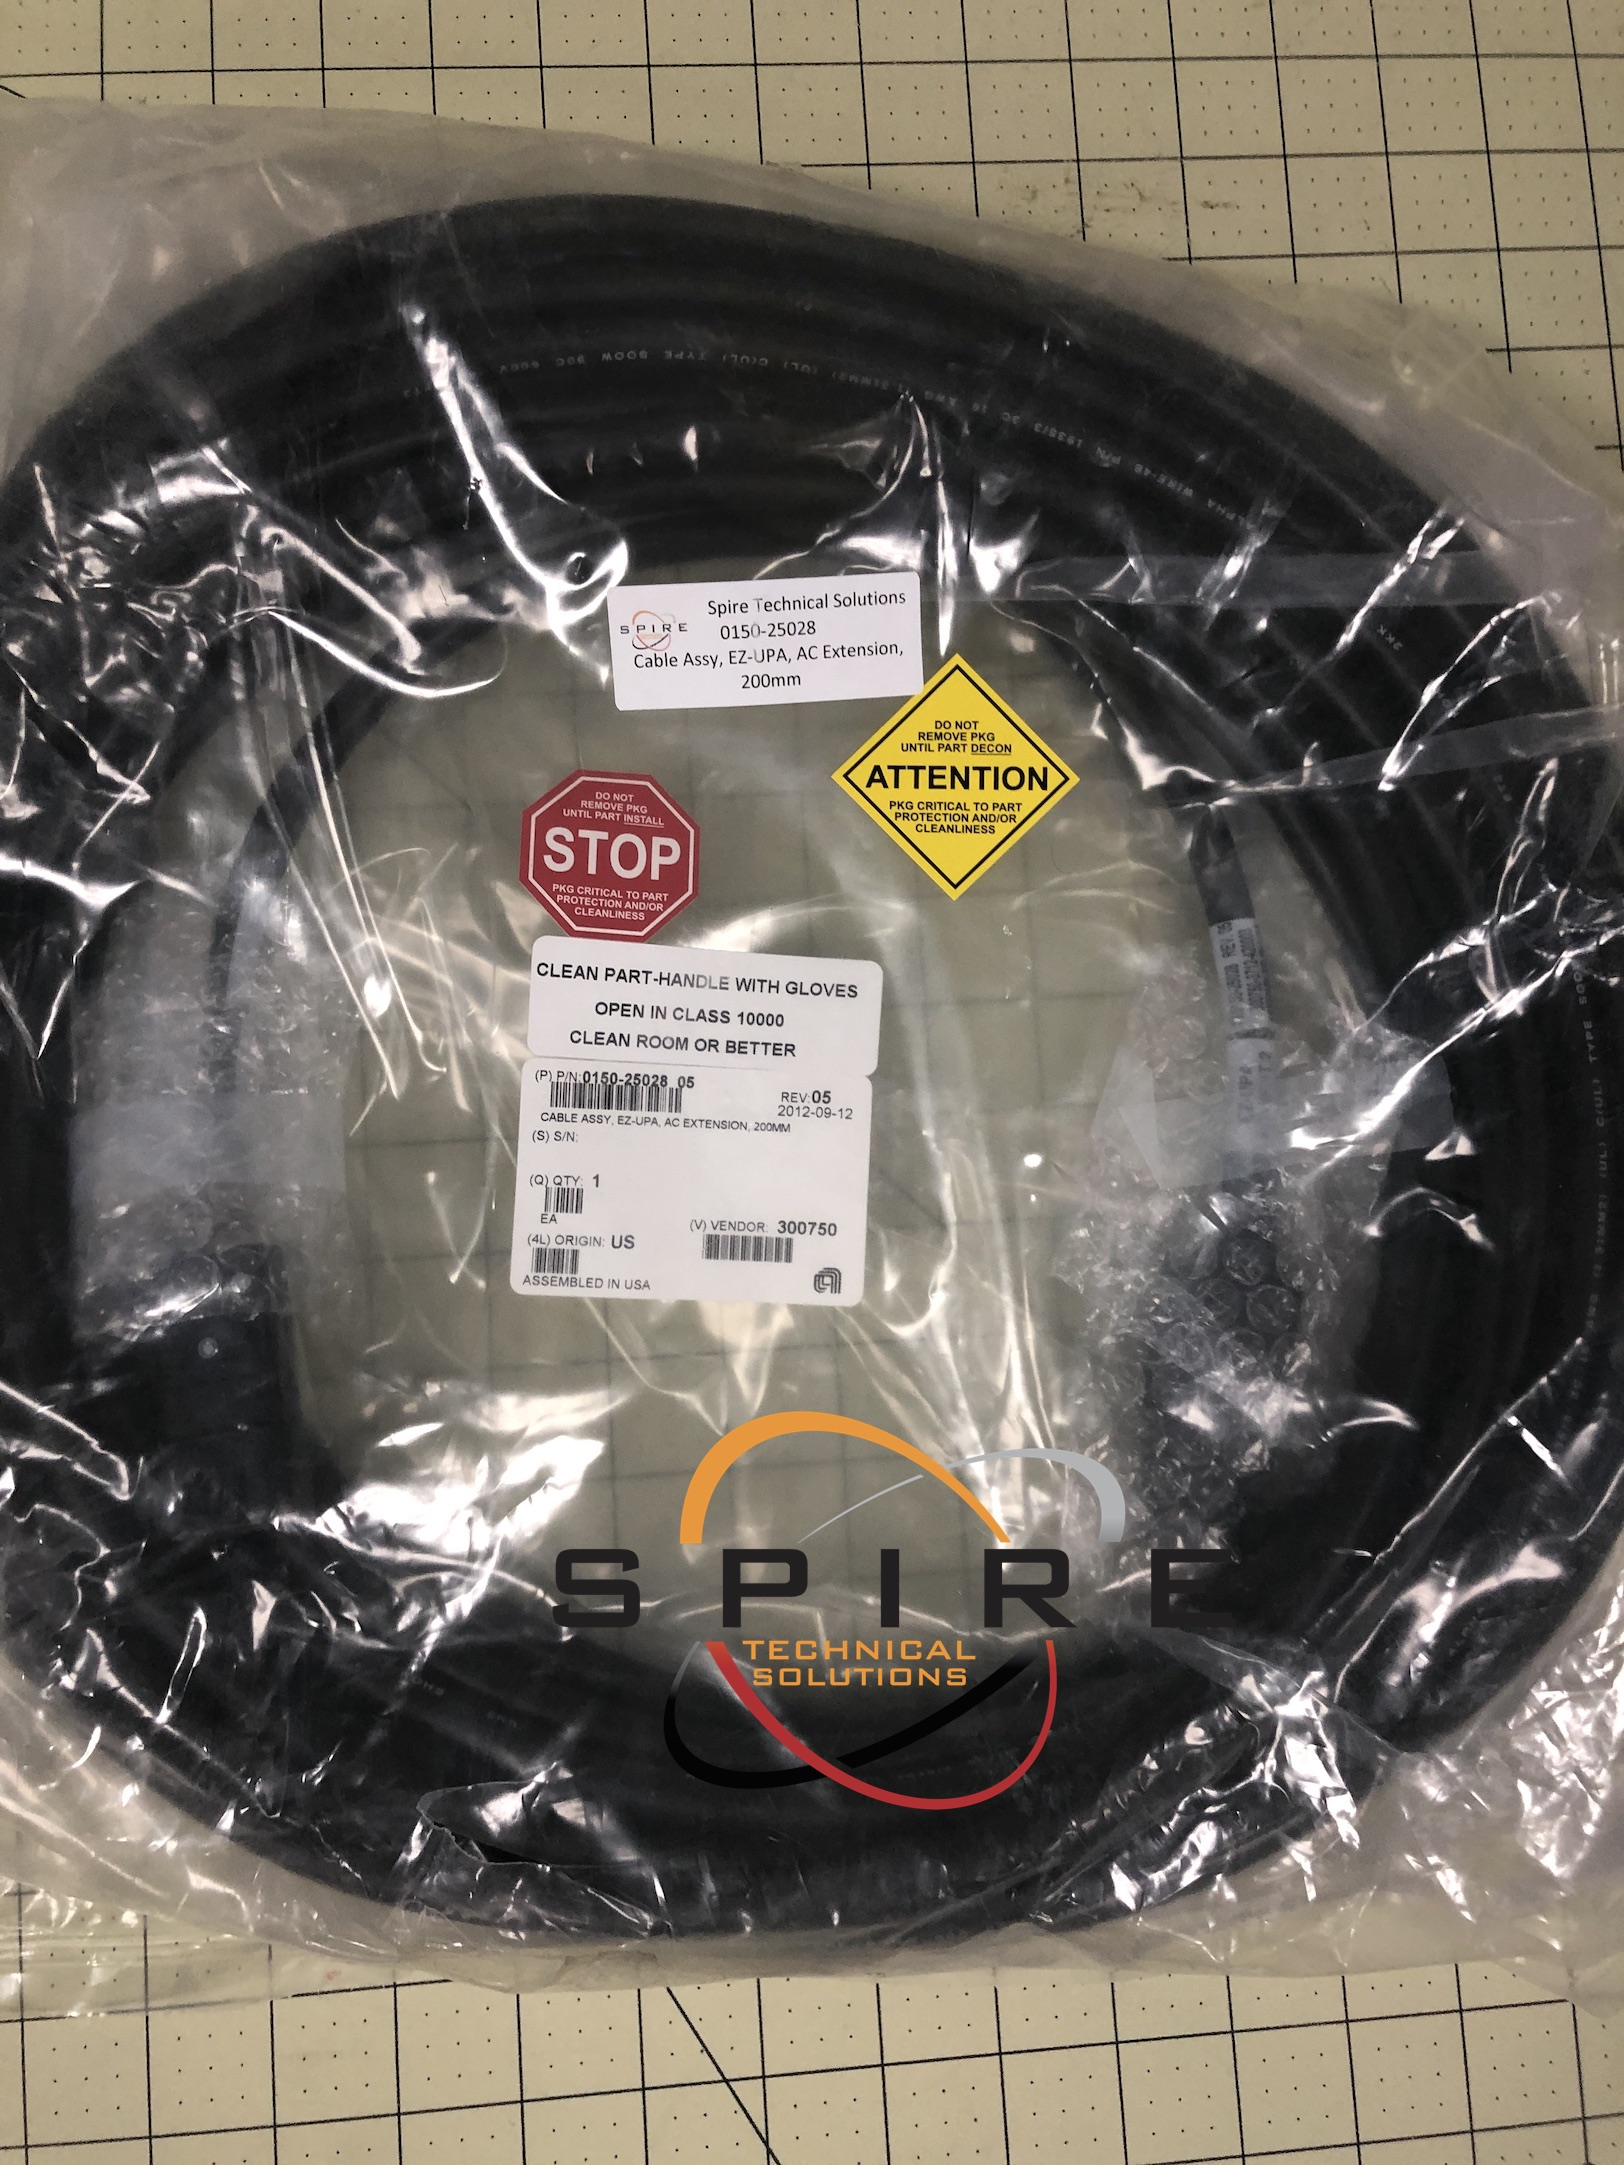 Cable Assy, EZ-UPA, AC Extension, 200mm